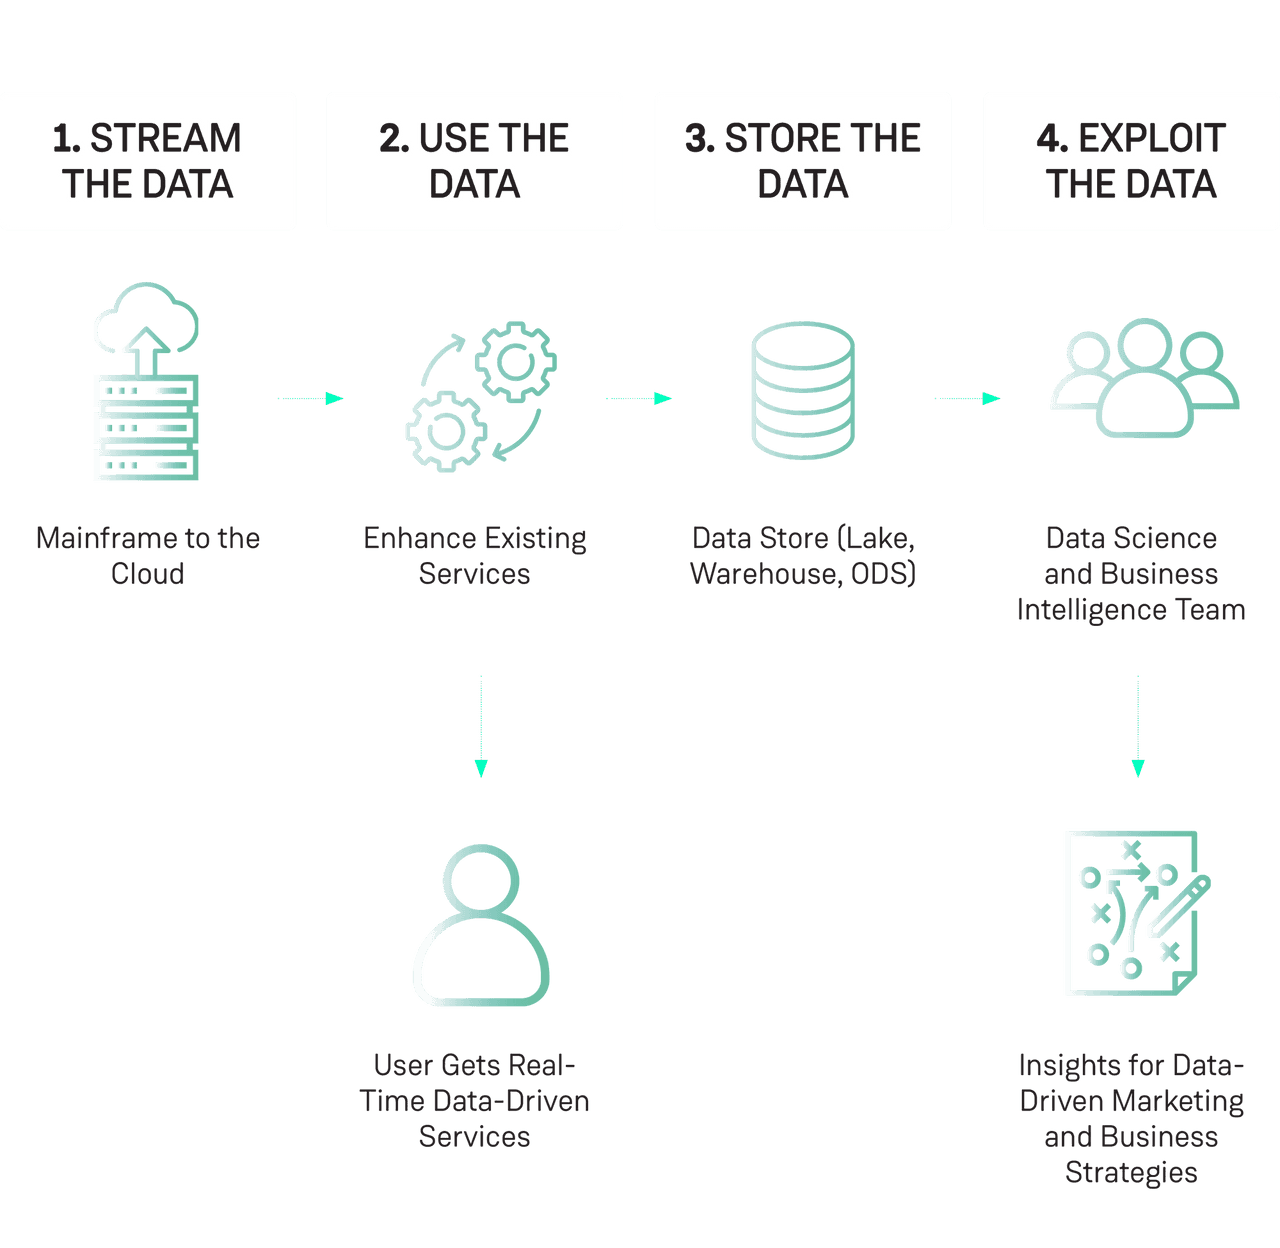 Four data stages